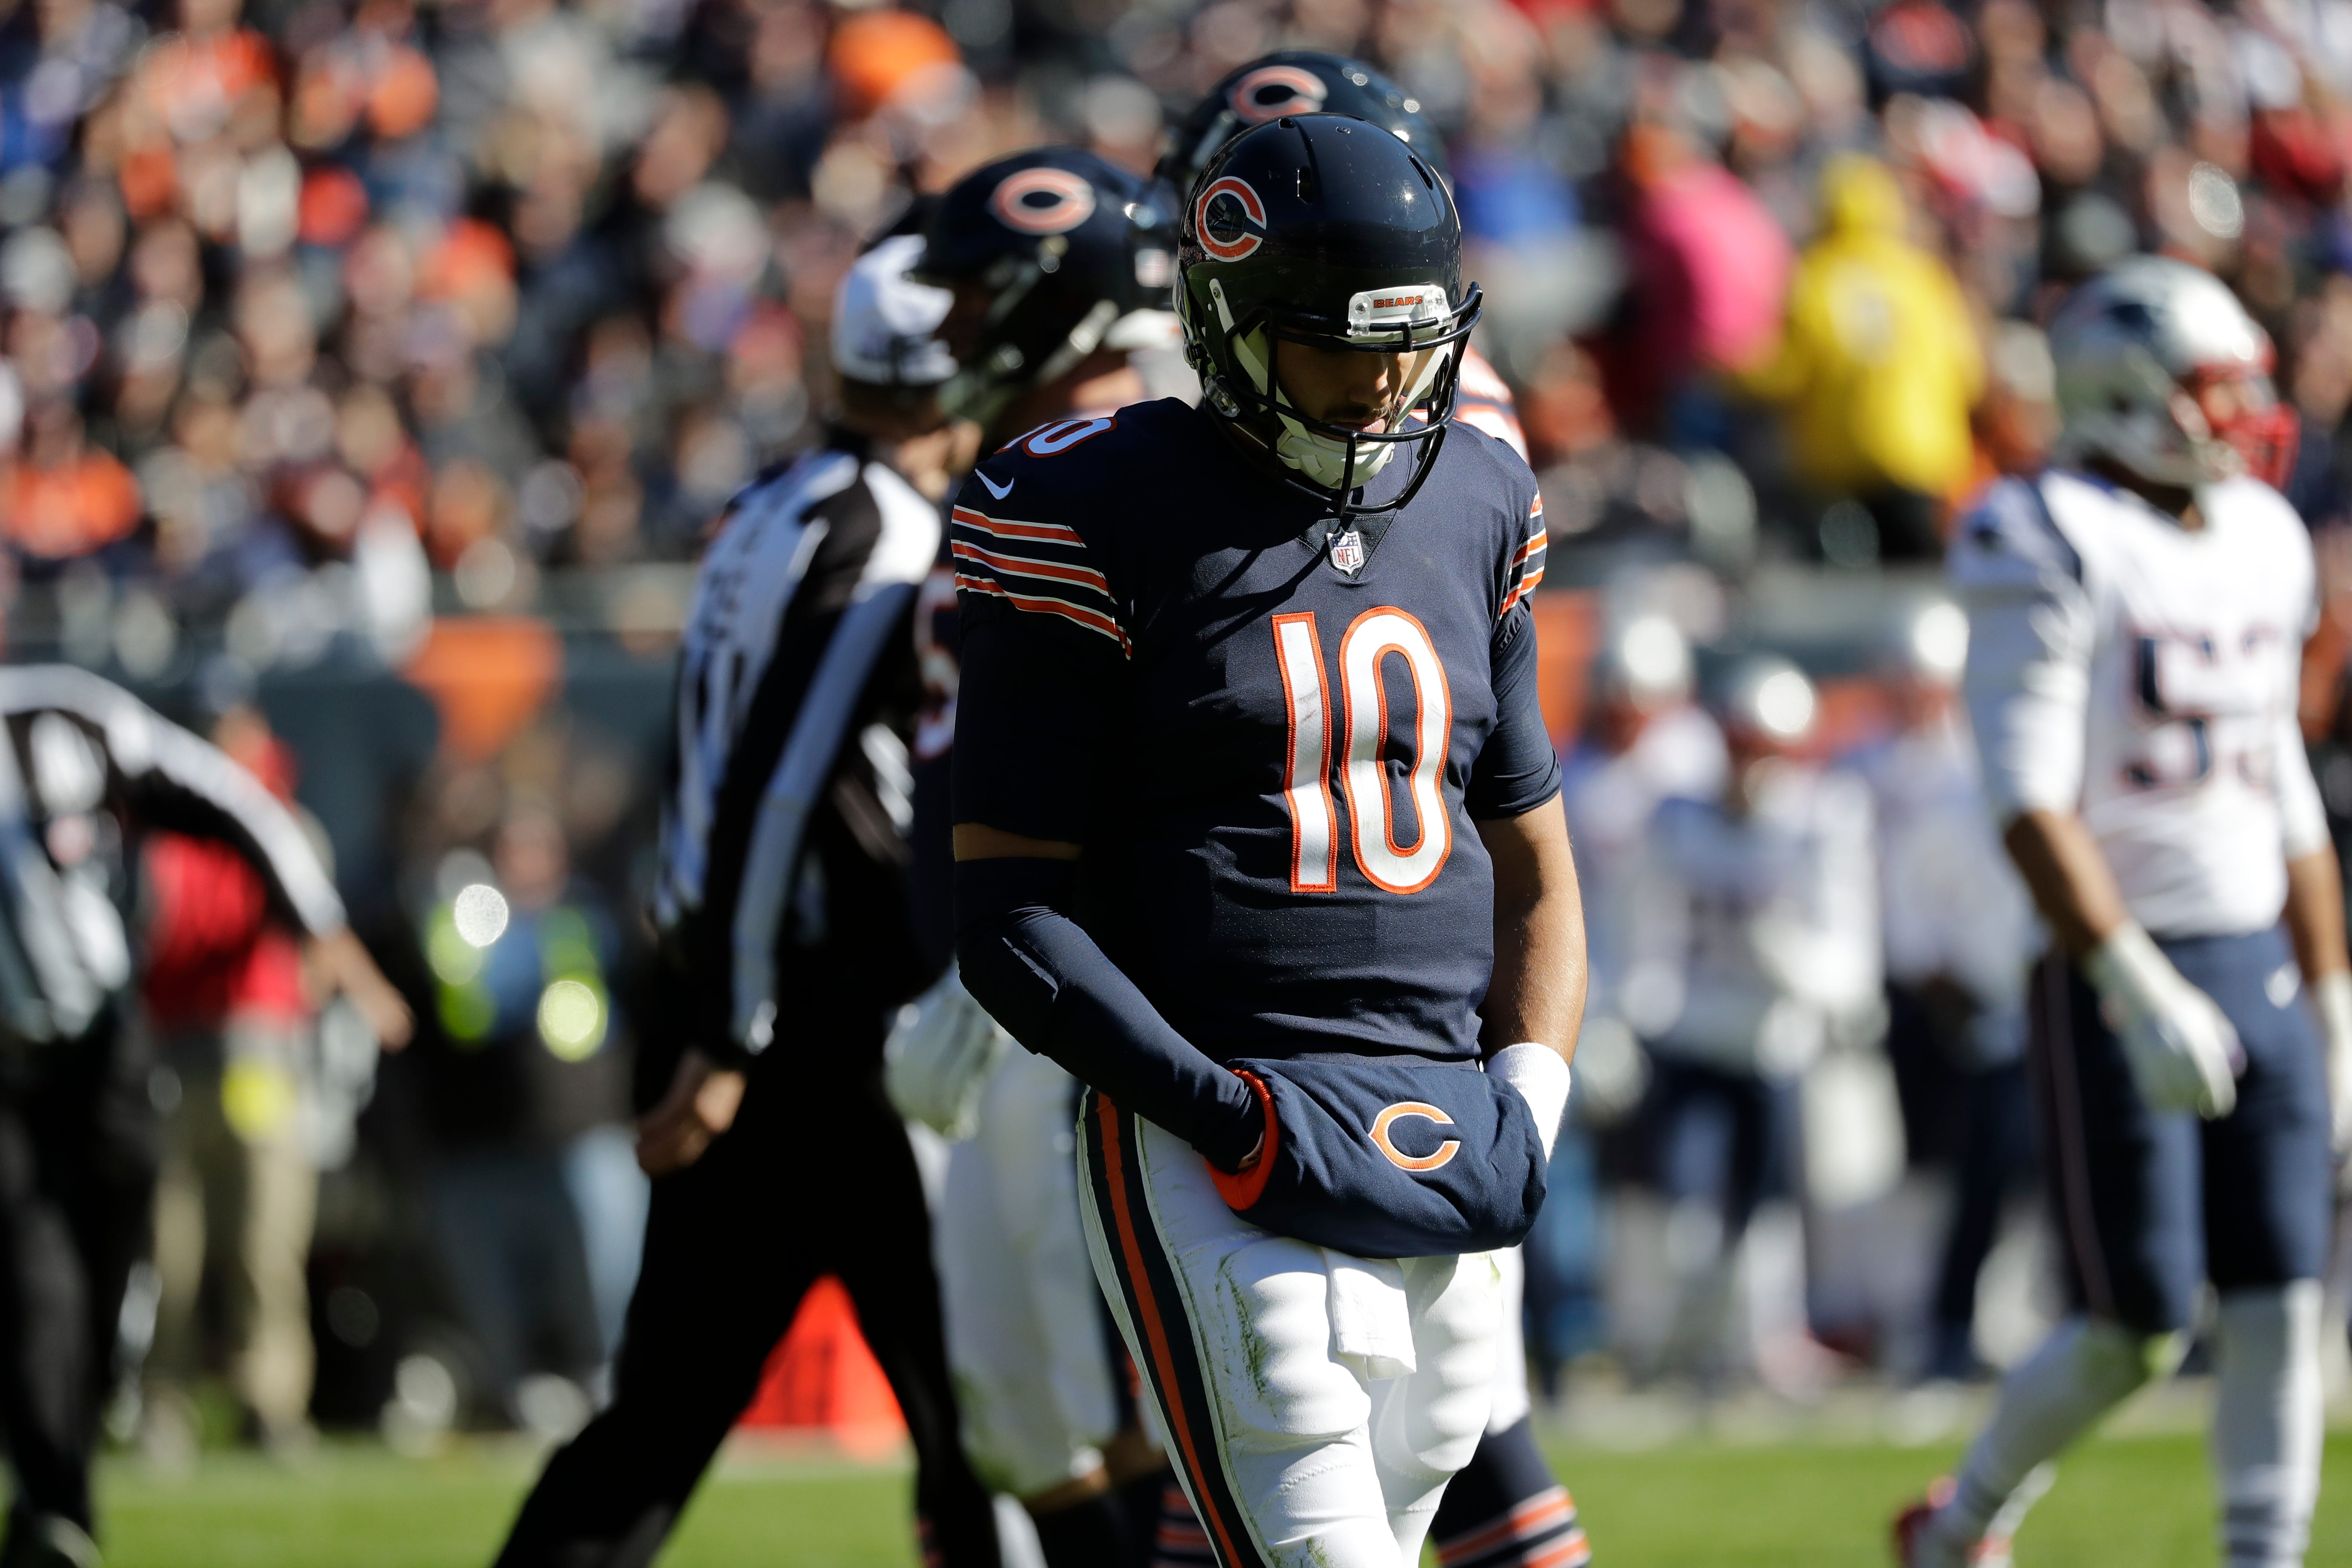 Bears' Hail Mary comes up 1 yard short as Patriots hang on for win